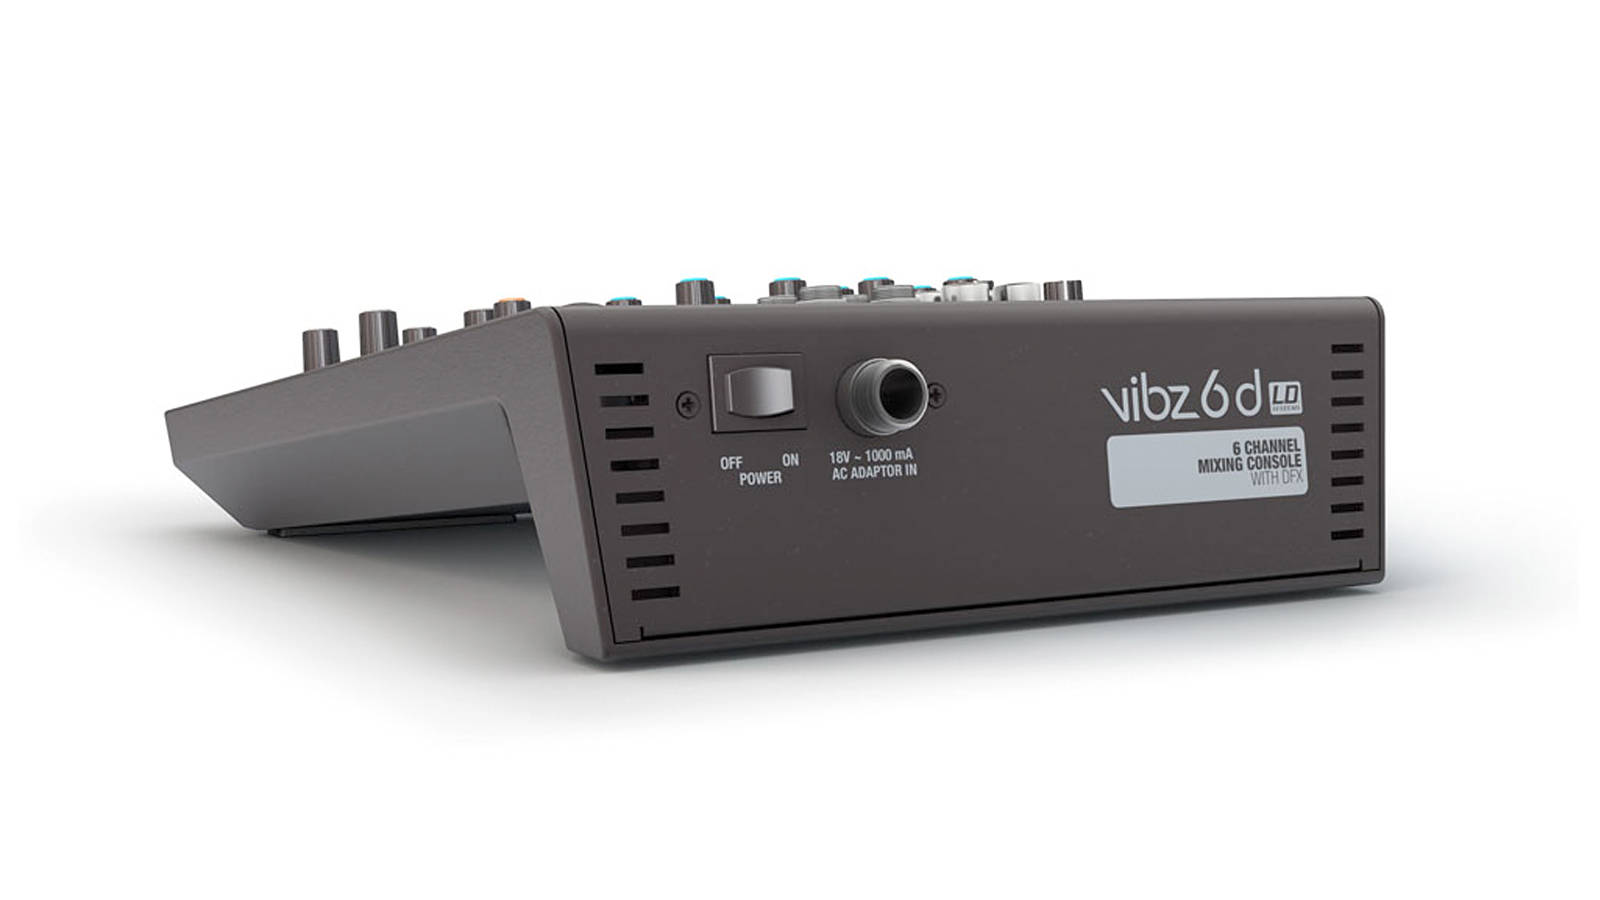 LD-Systems VIBZ 6 D Mischpult